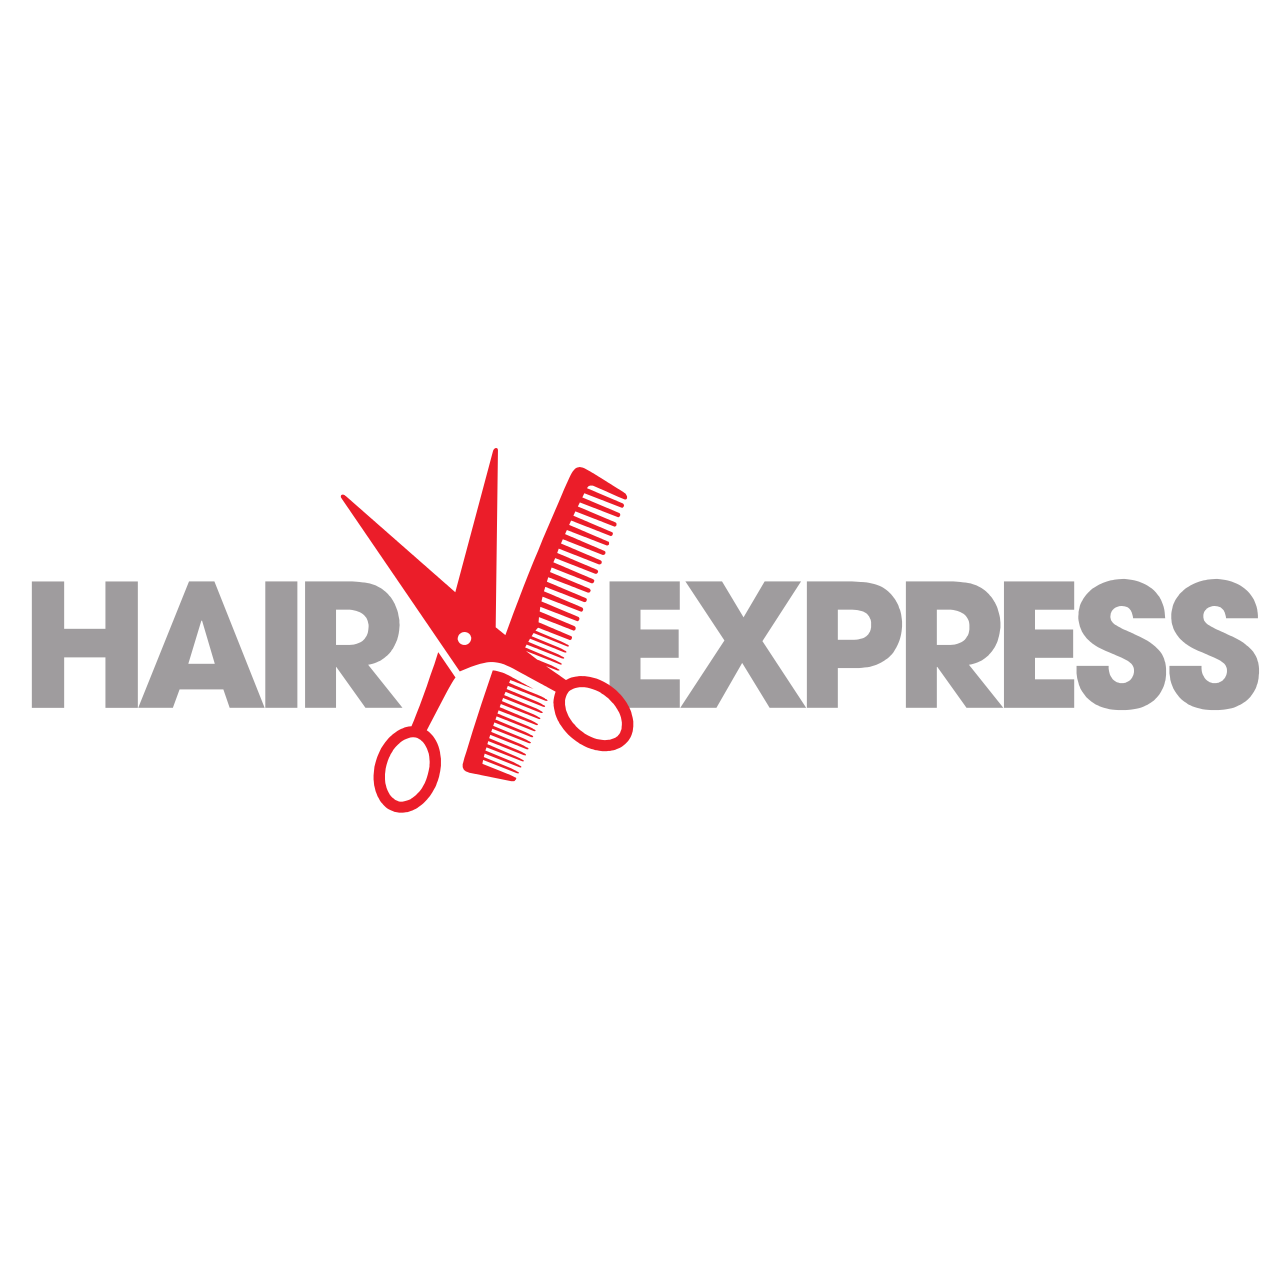 HairExpress Logo